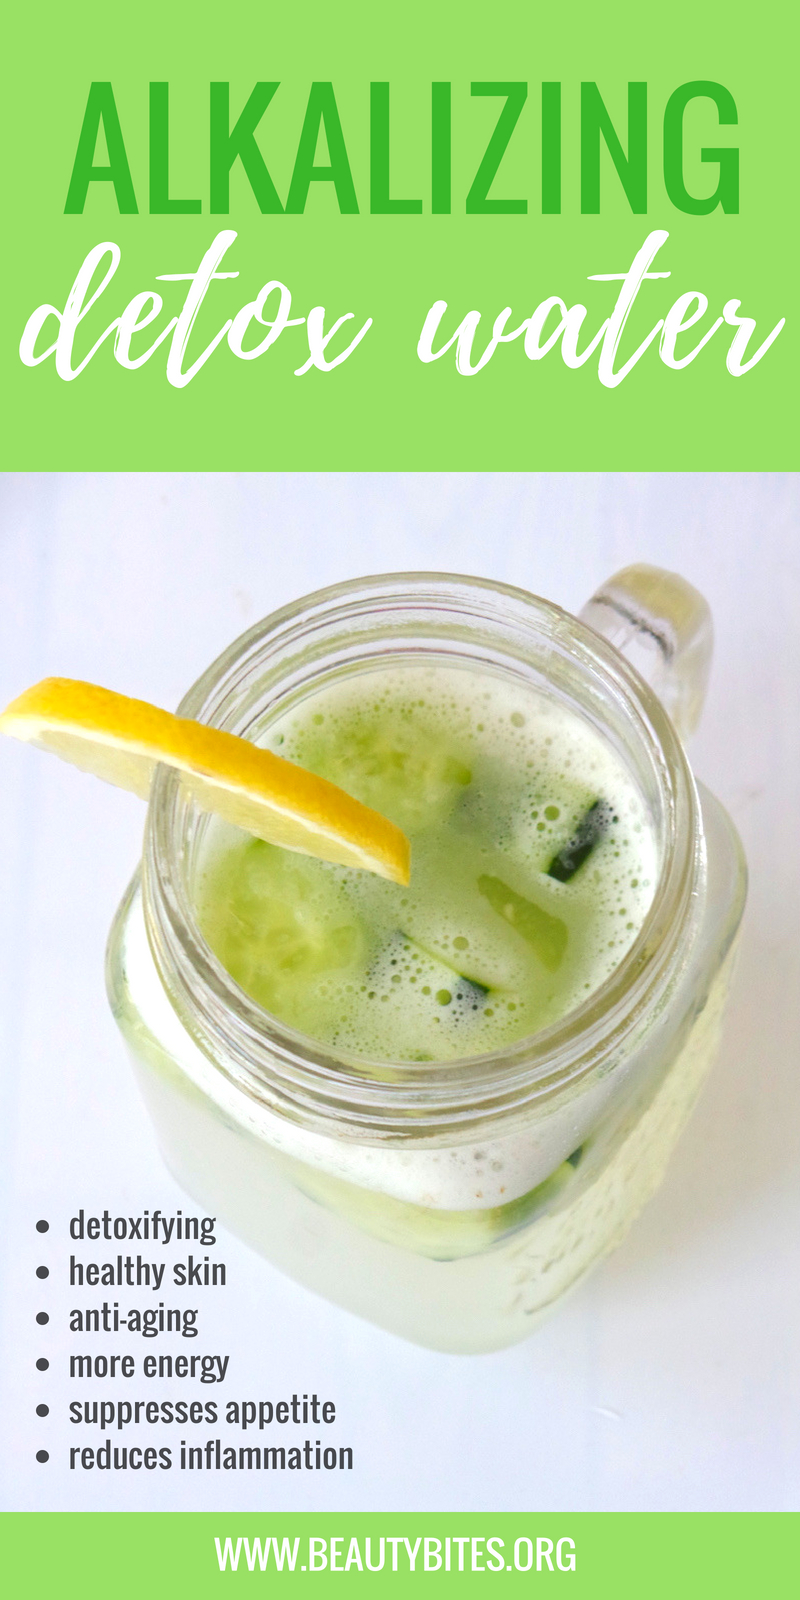 Alkalizing detox water to rejuvenate and make you feel awesome! Remove toxins, have more energy and alkalize your body with this infused water recipe! The ingredients are 2 highly alkaline foods and water! Enjoy! | www.beautybites.org